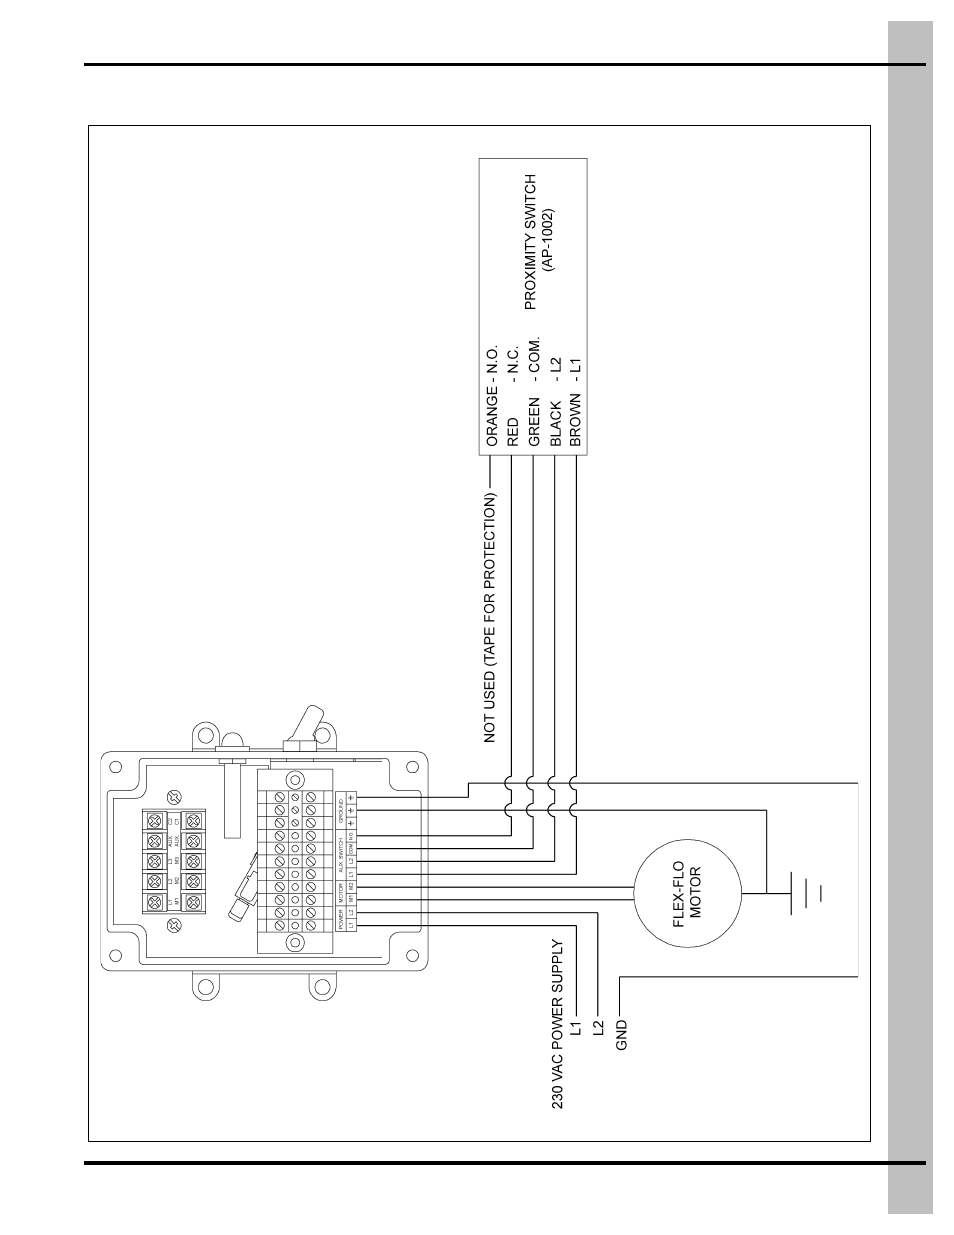 Flex-flo control with proximity switch (ap-1002) | Grain Systems Bin  Accessories PNEG-914 User Manual | Page 59 / 64